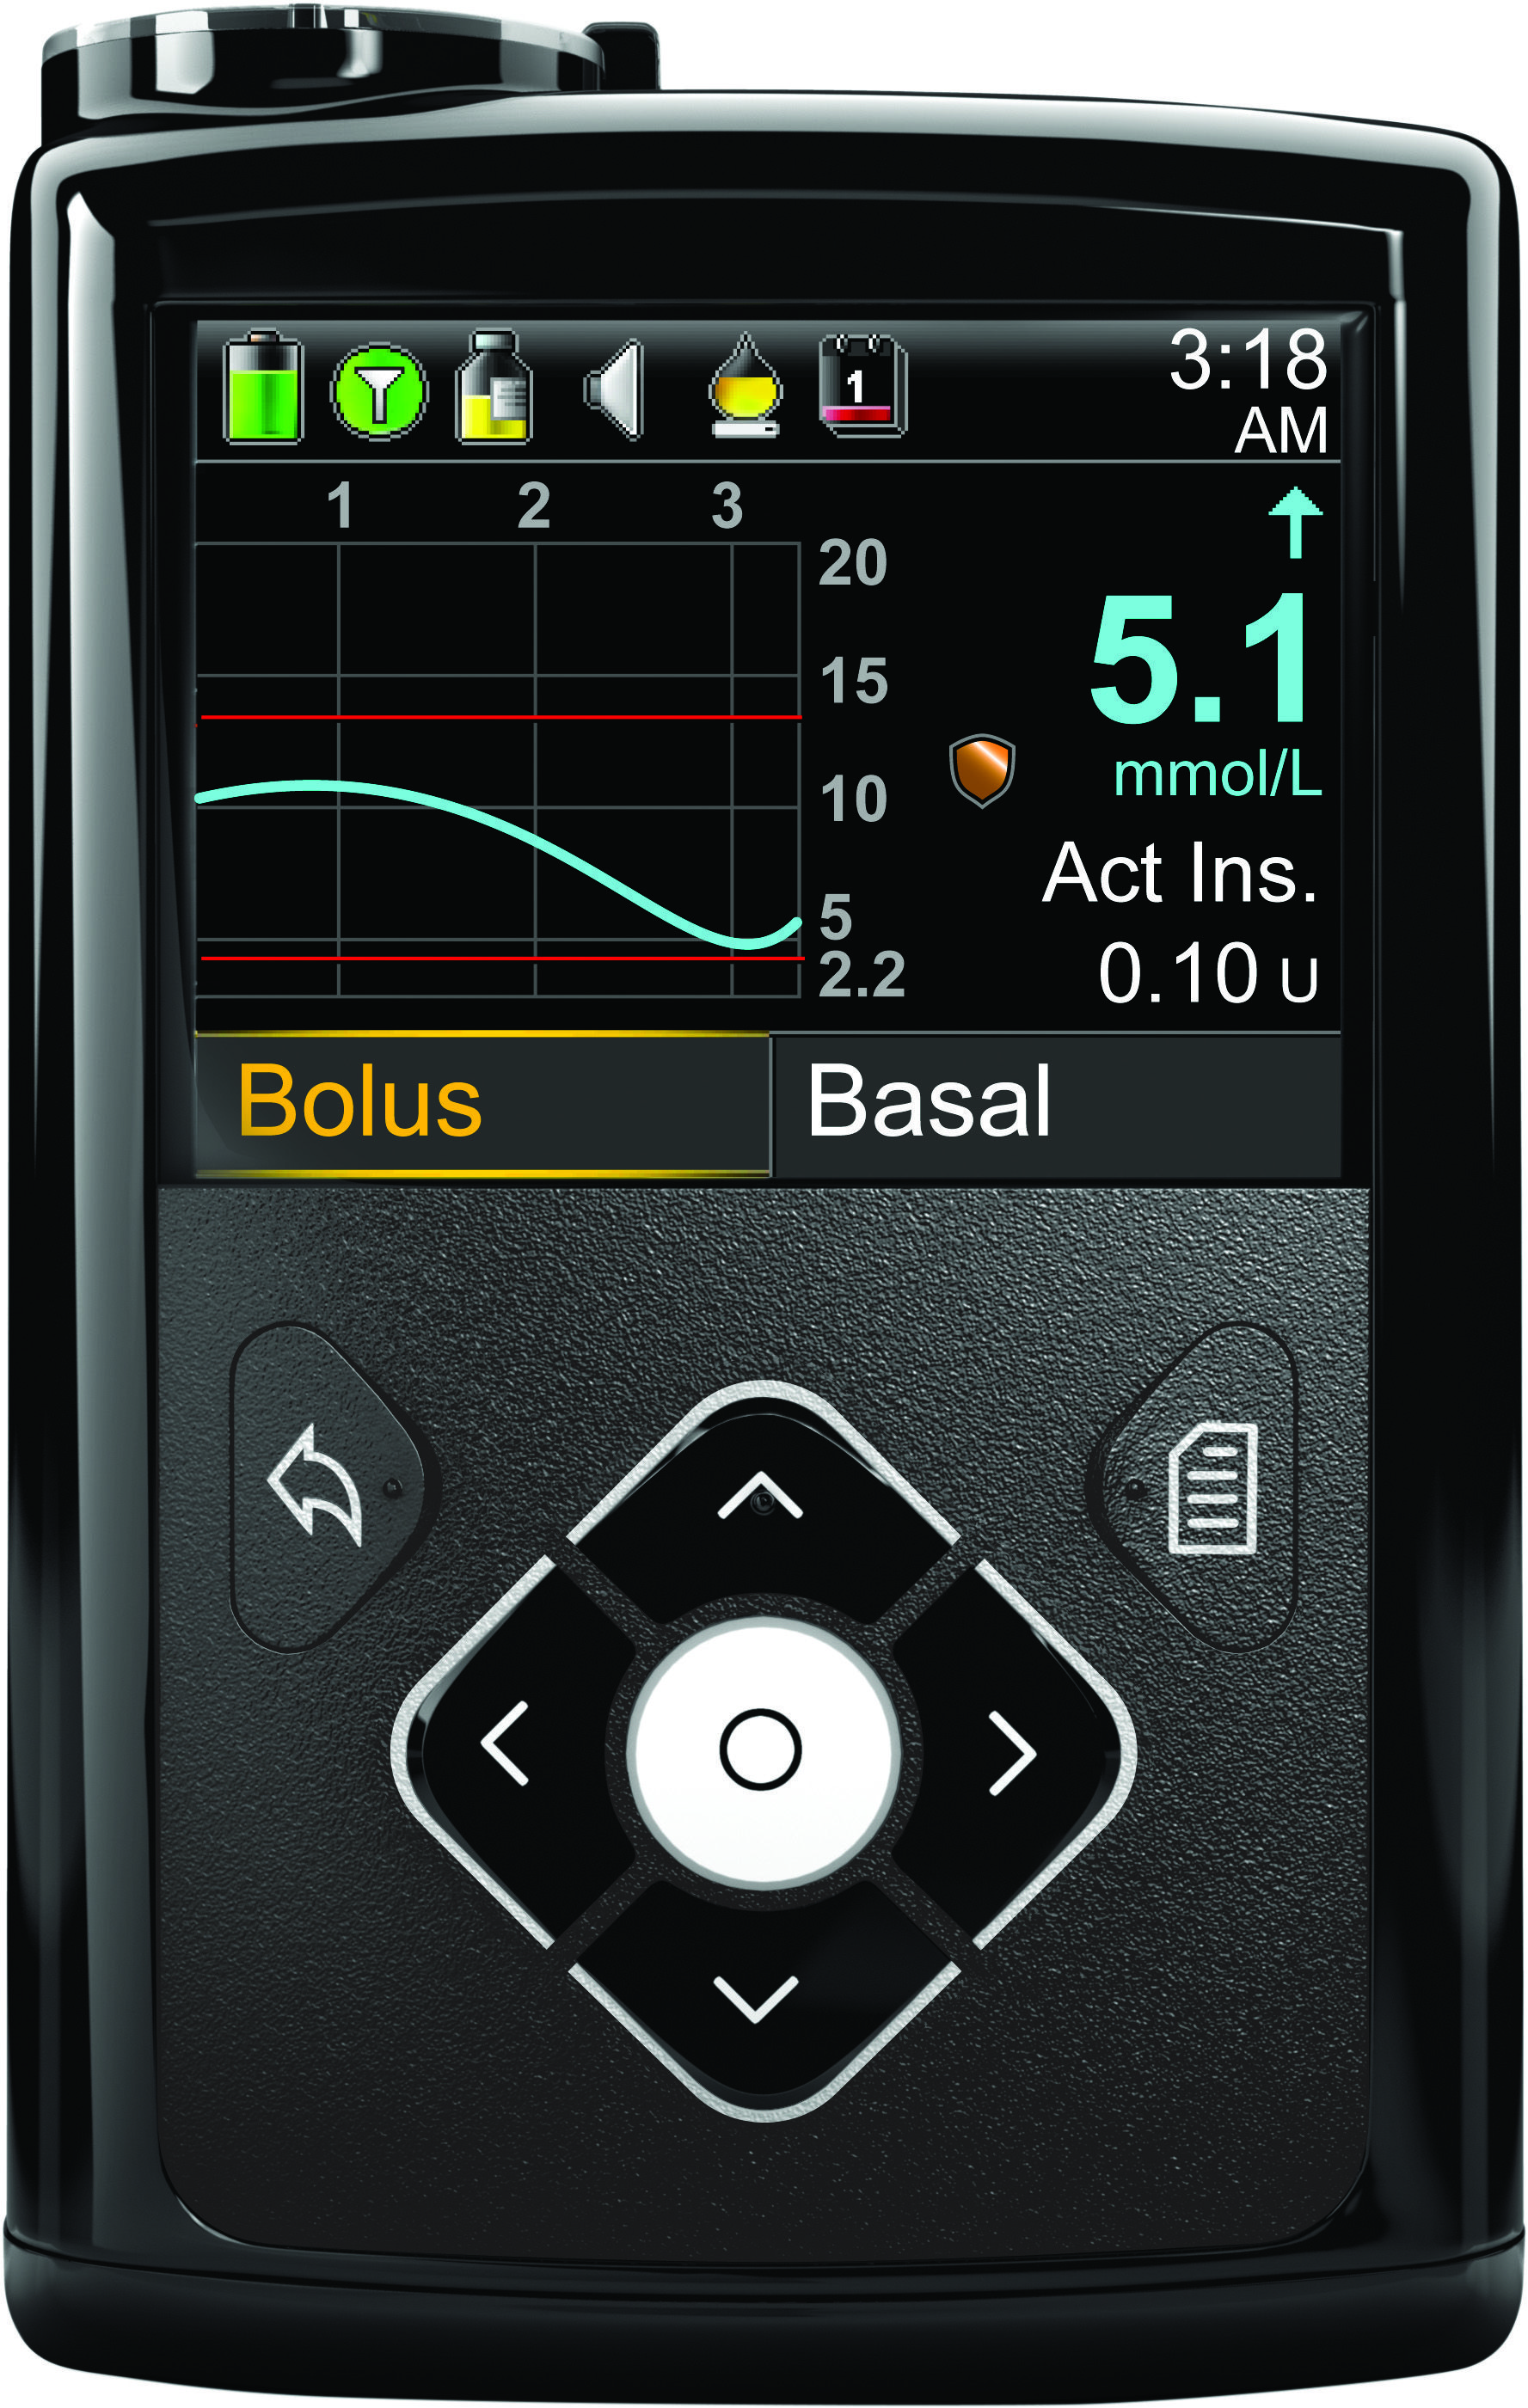 Medtronic Launches New Minimed 640G Insulin Pump (in Australia